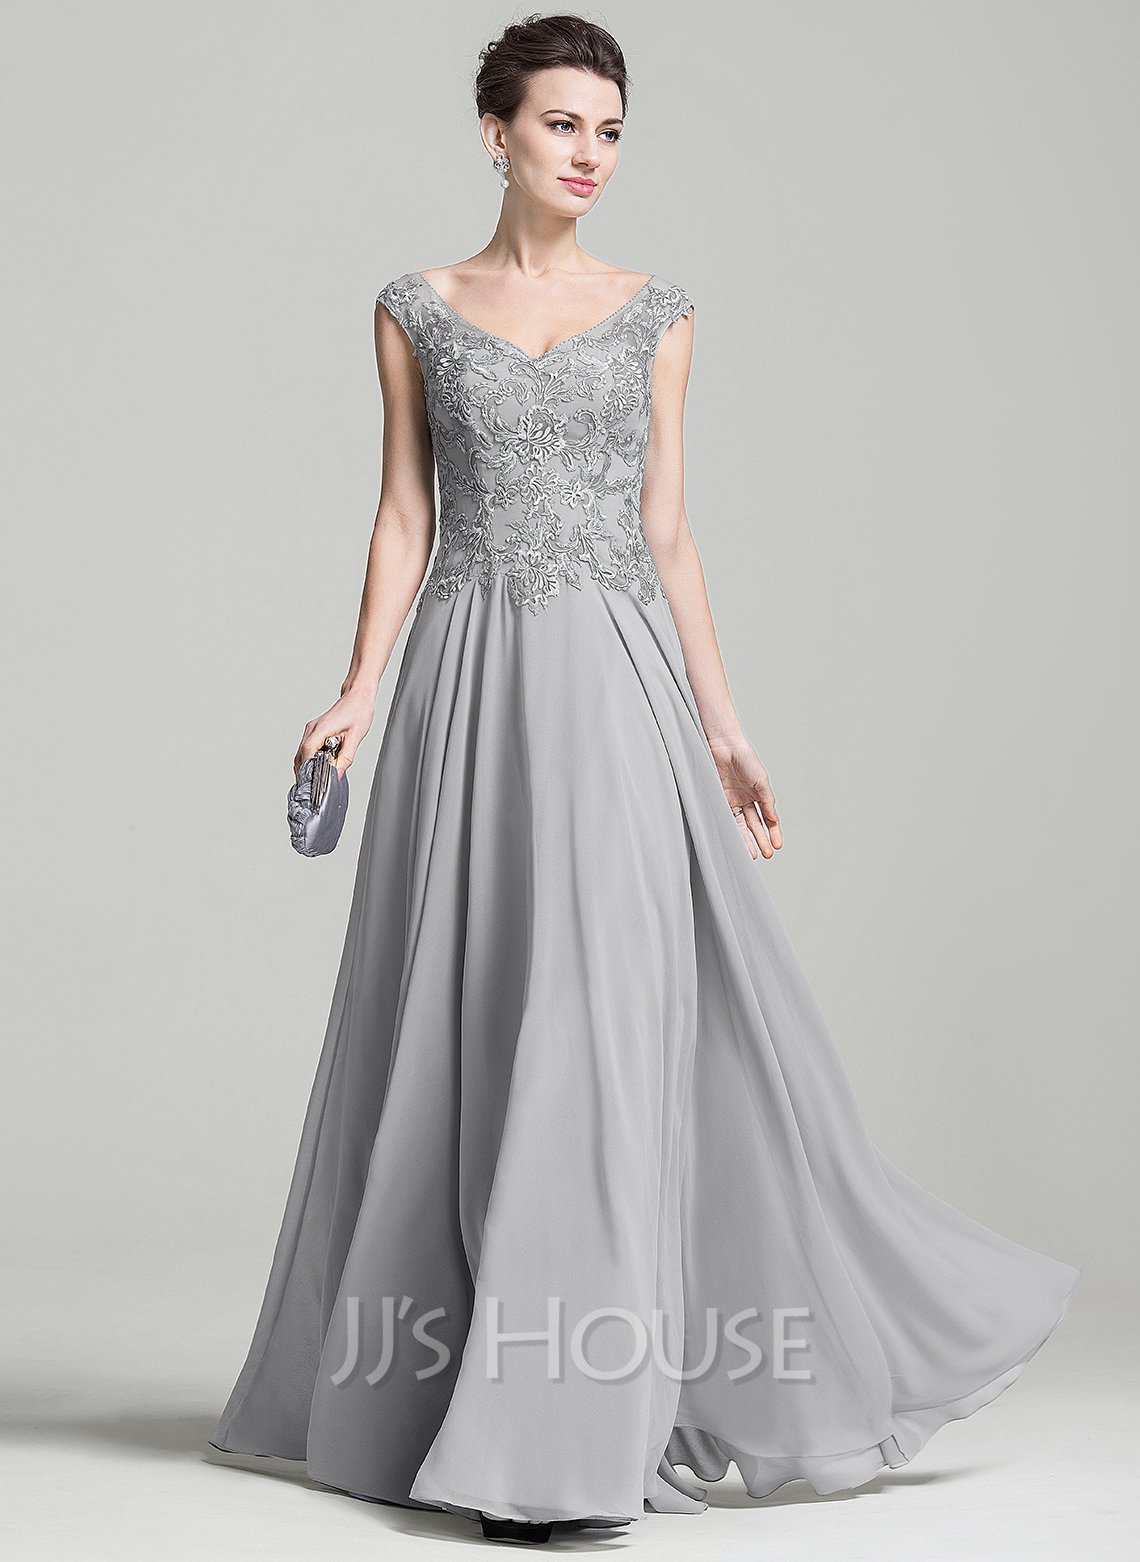 V-neck Floor-Length Chiffon Mother of the Bride Dress With Appliques Lace.  Loading zoom a4b062d1750c